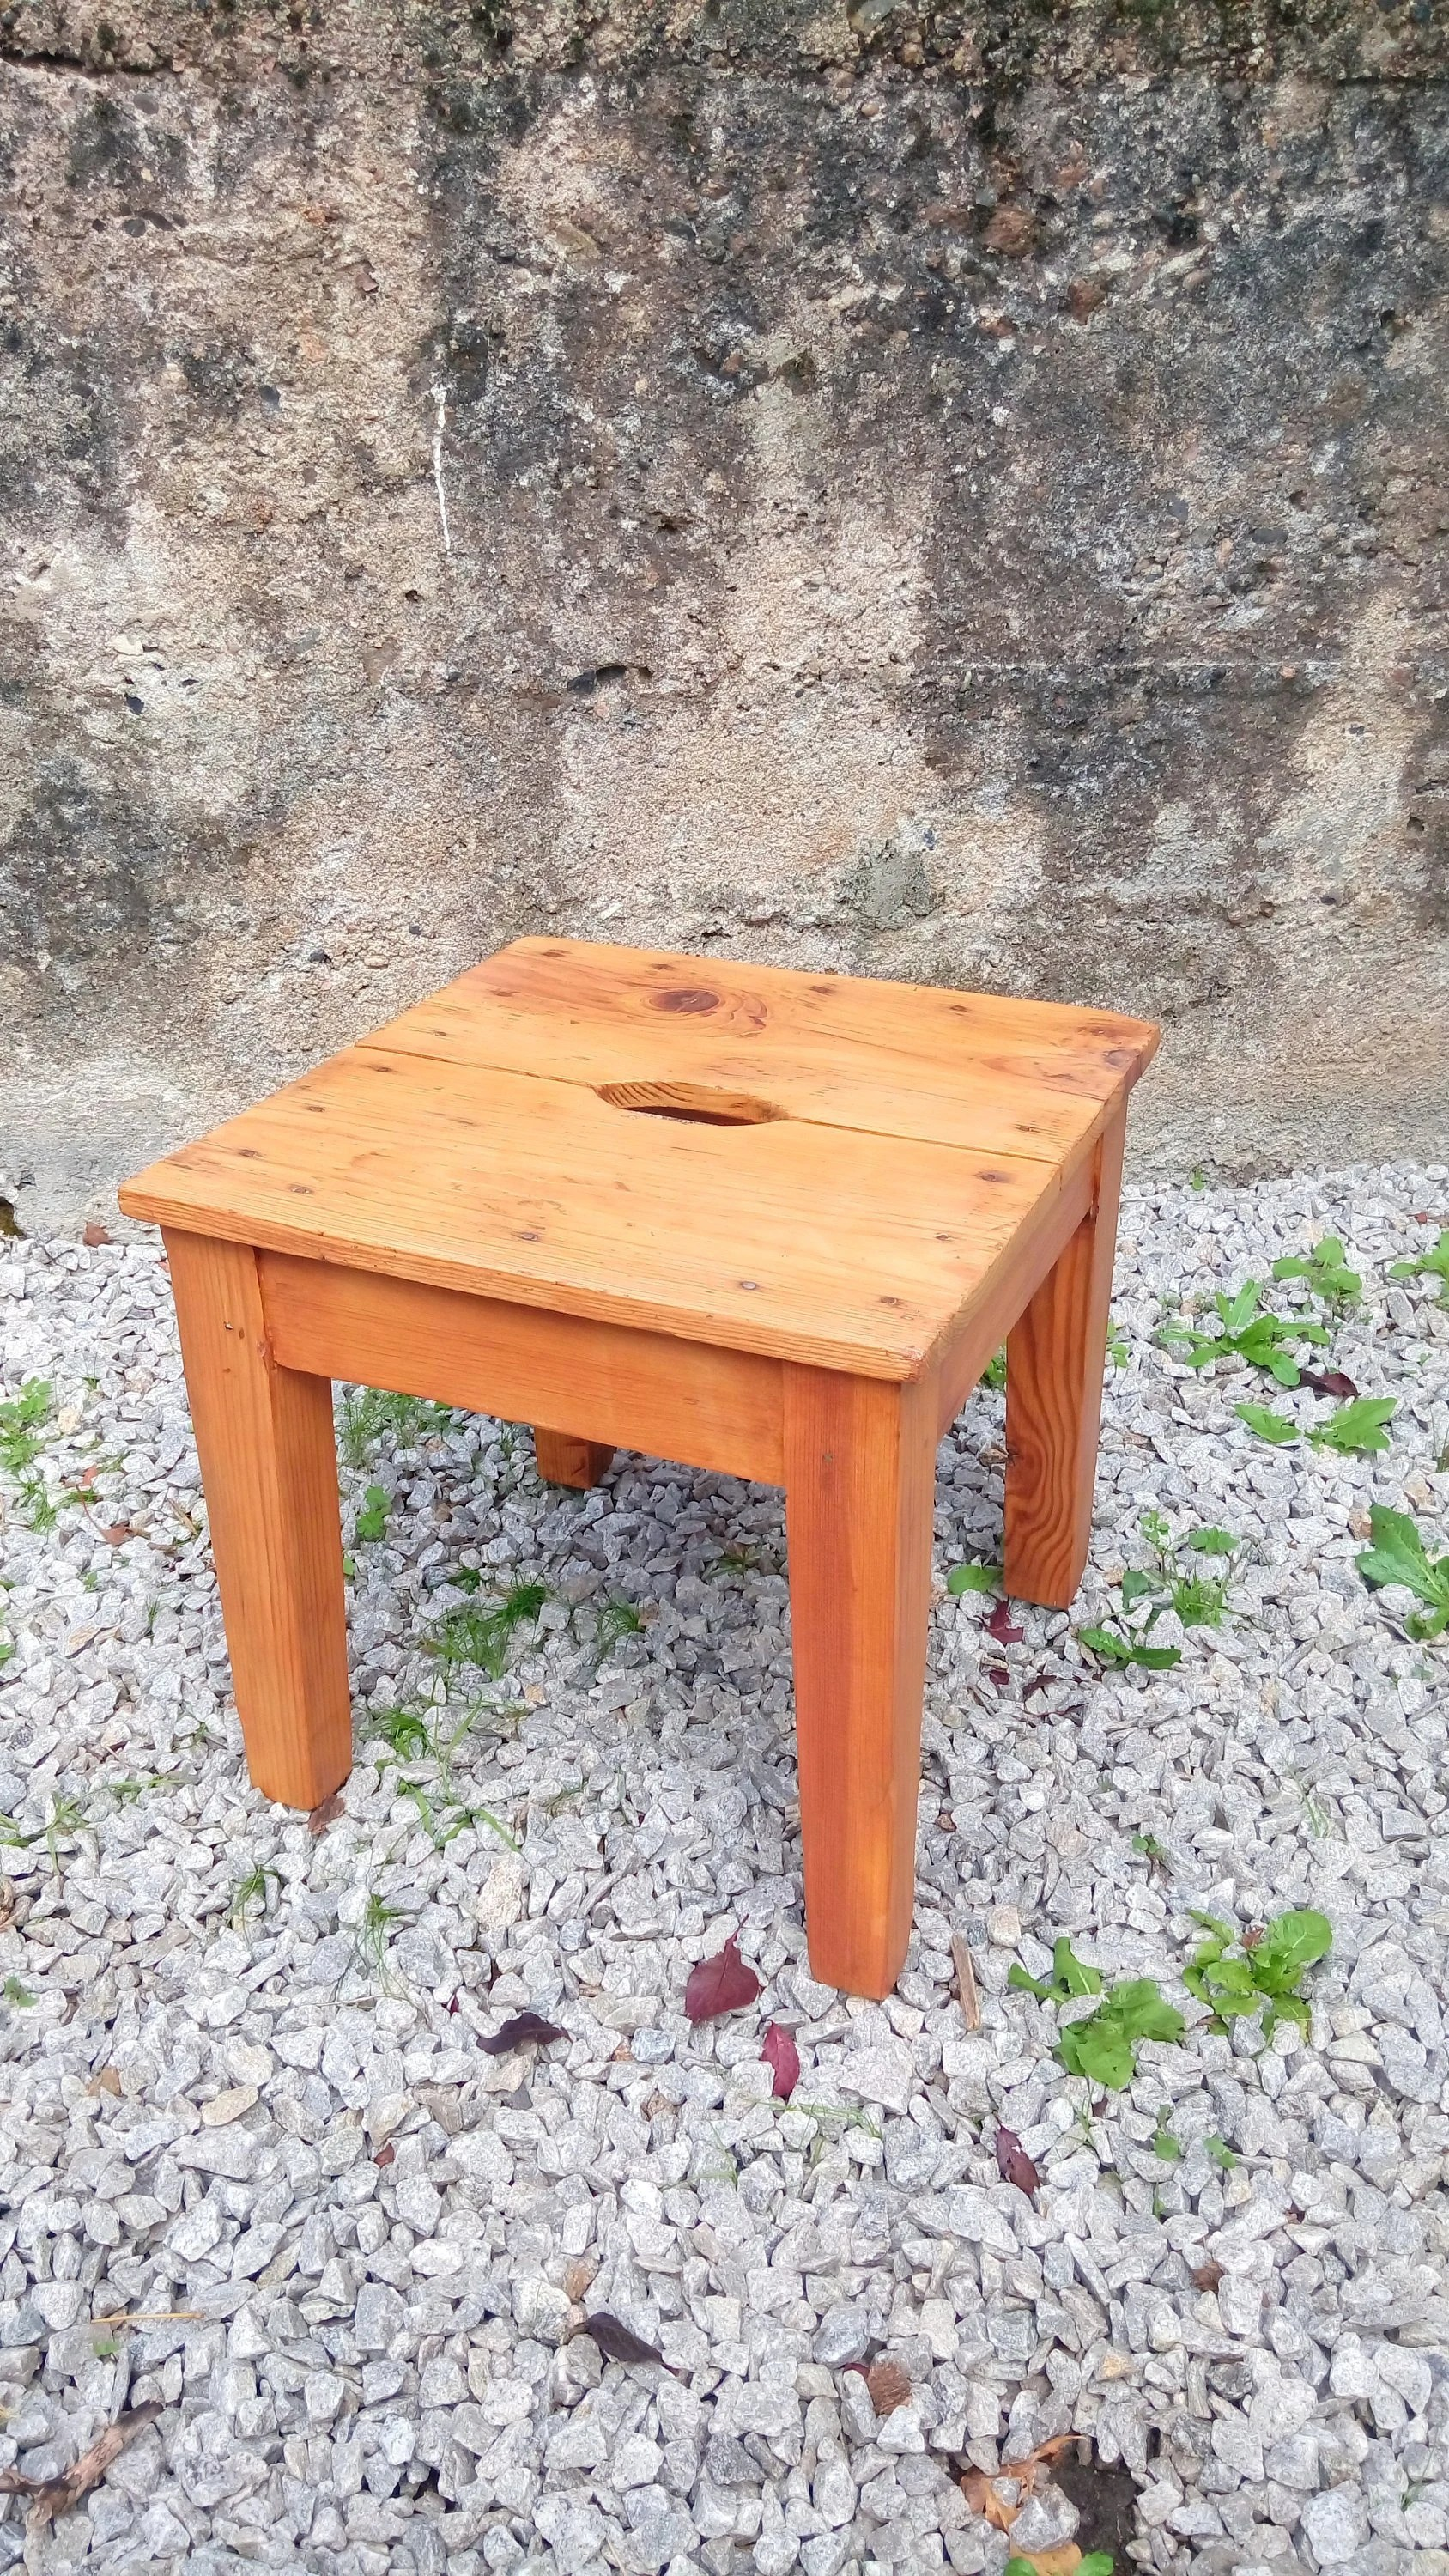 Table Rustique Ancienne Ancienne Table D Appoint Tabouret Rustique En Bois Tabouret Table Marche Pieds